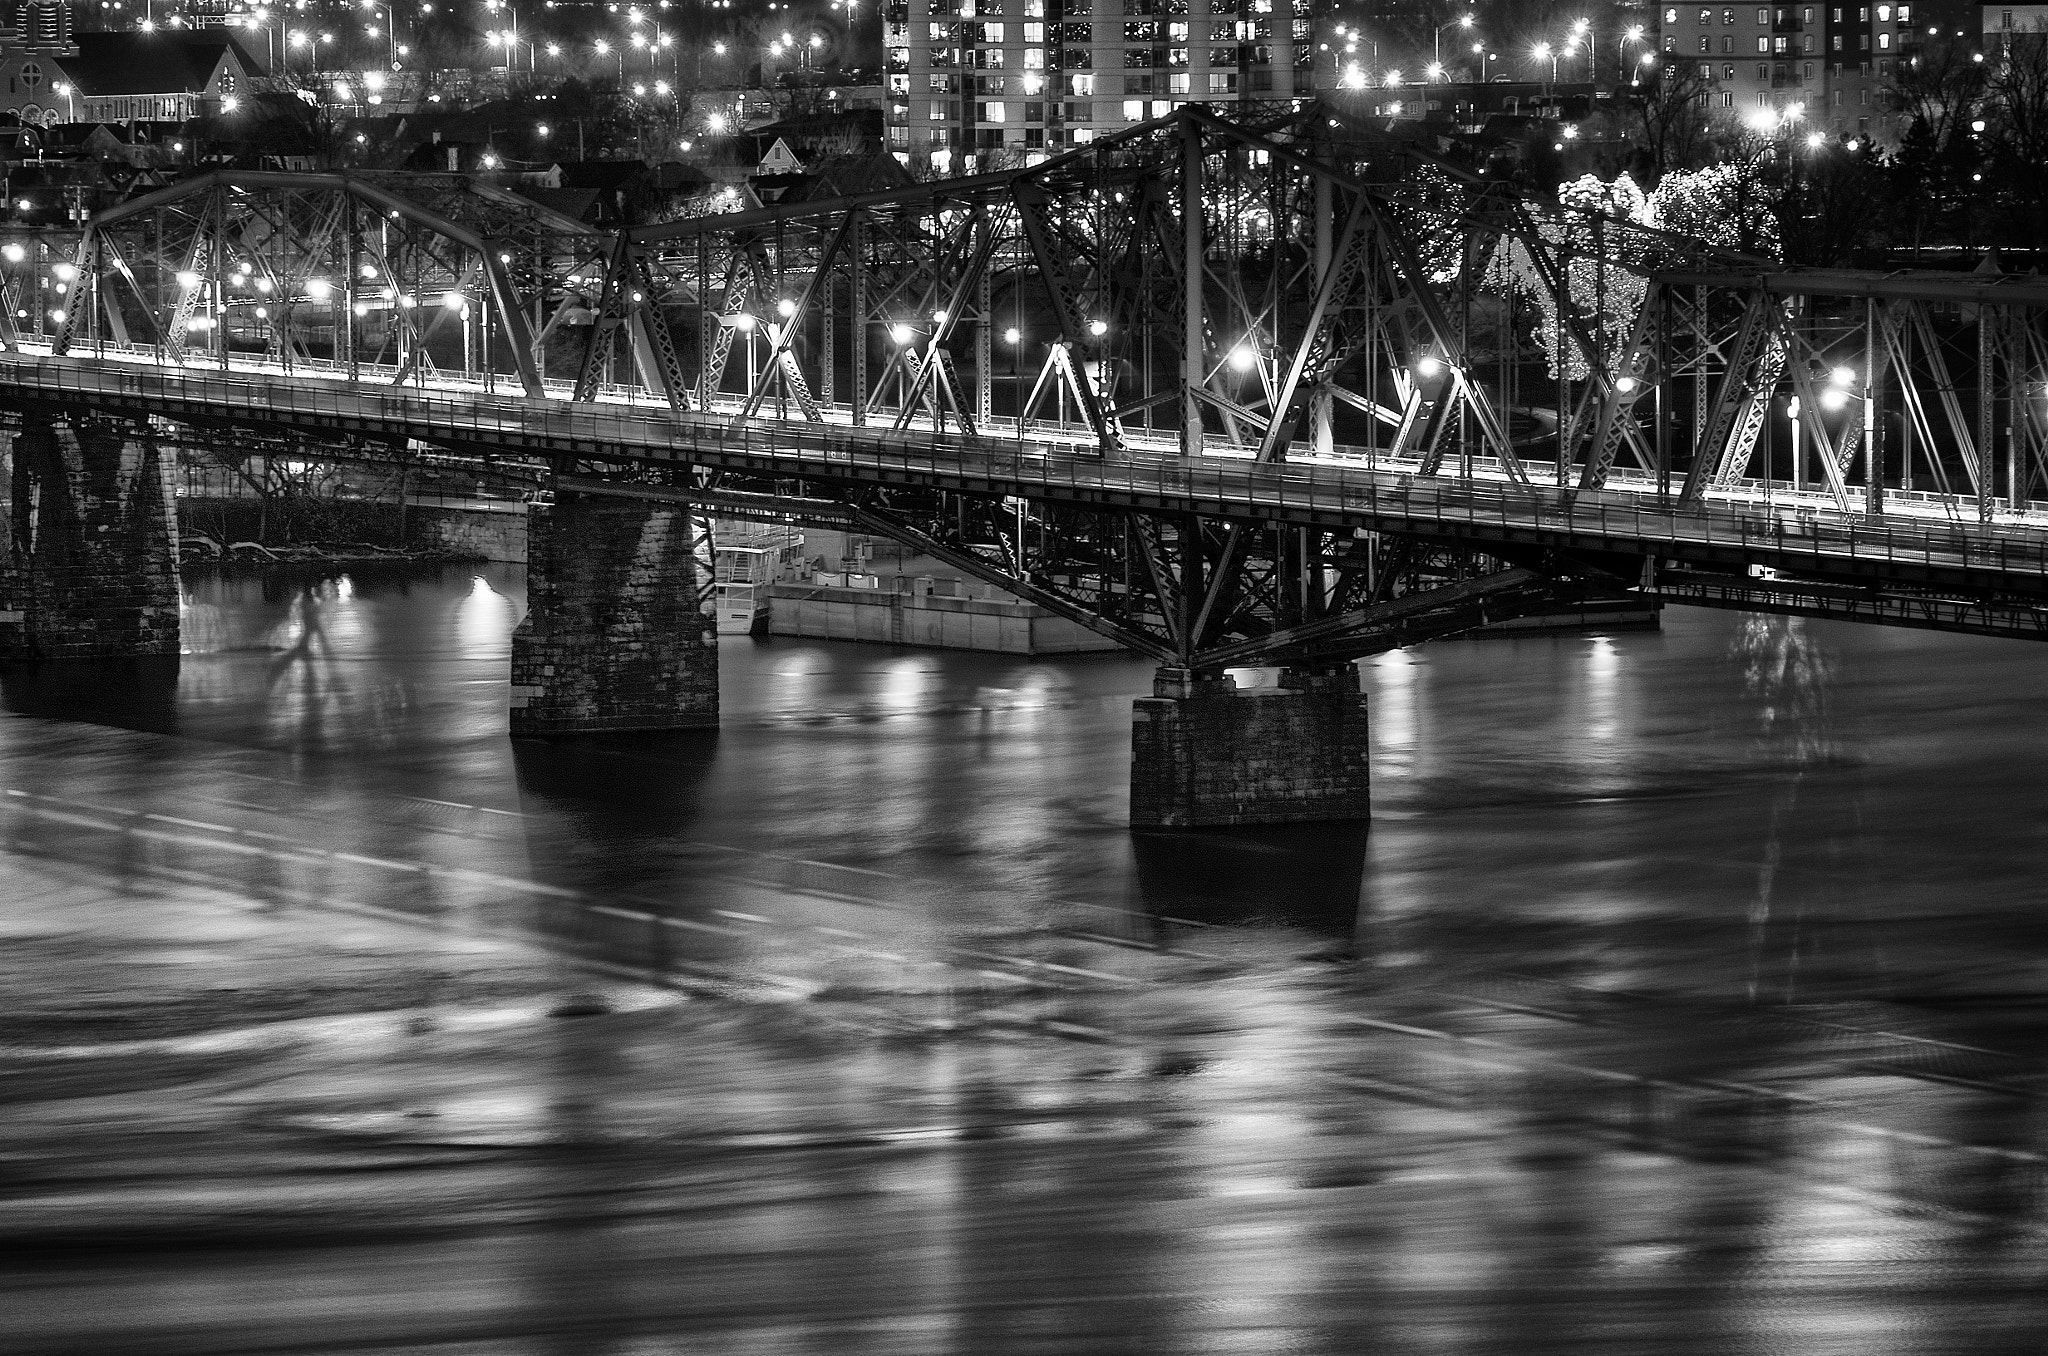 Photograph Night Reflections by Philip Rice on 500px